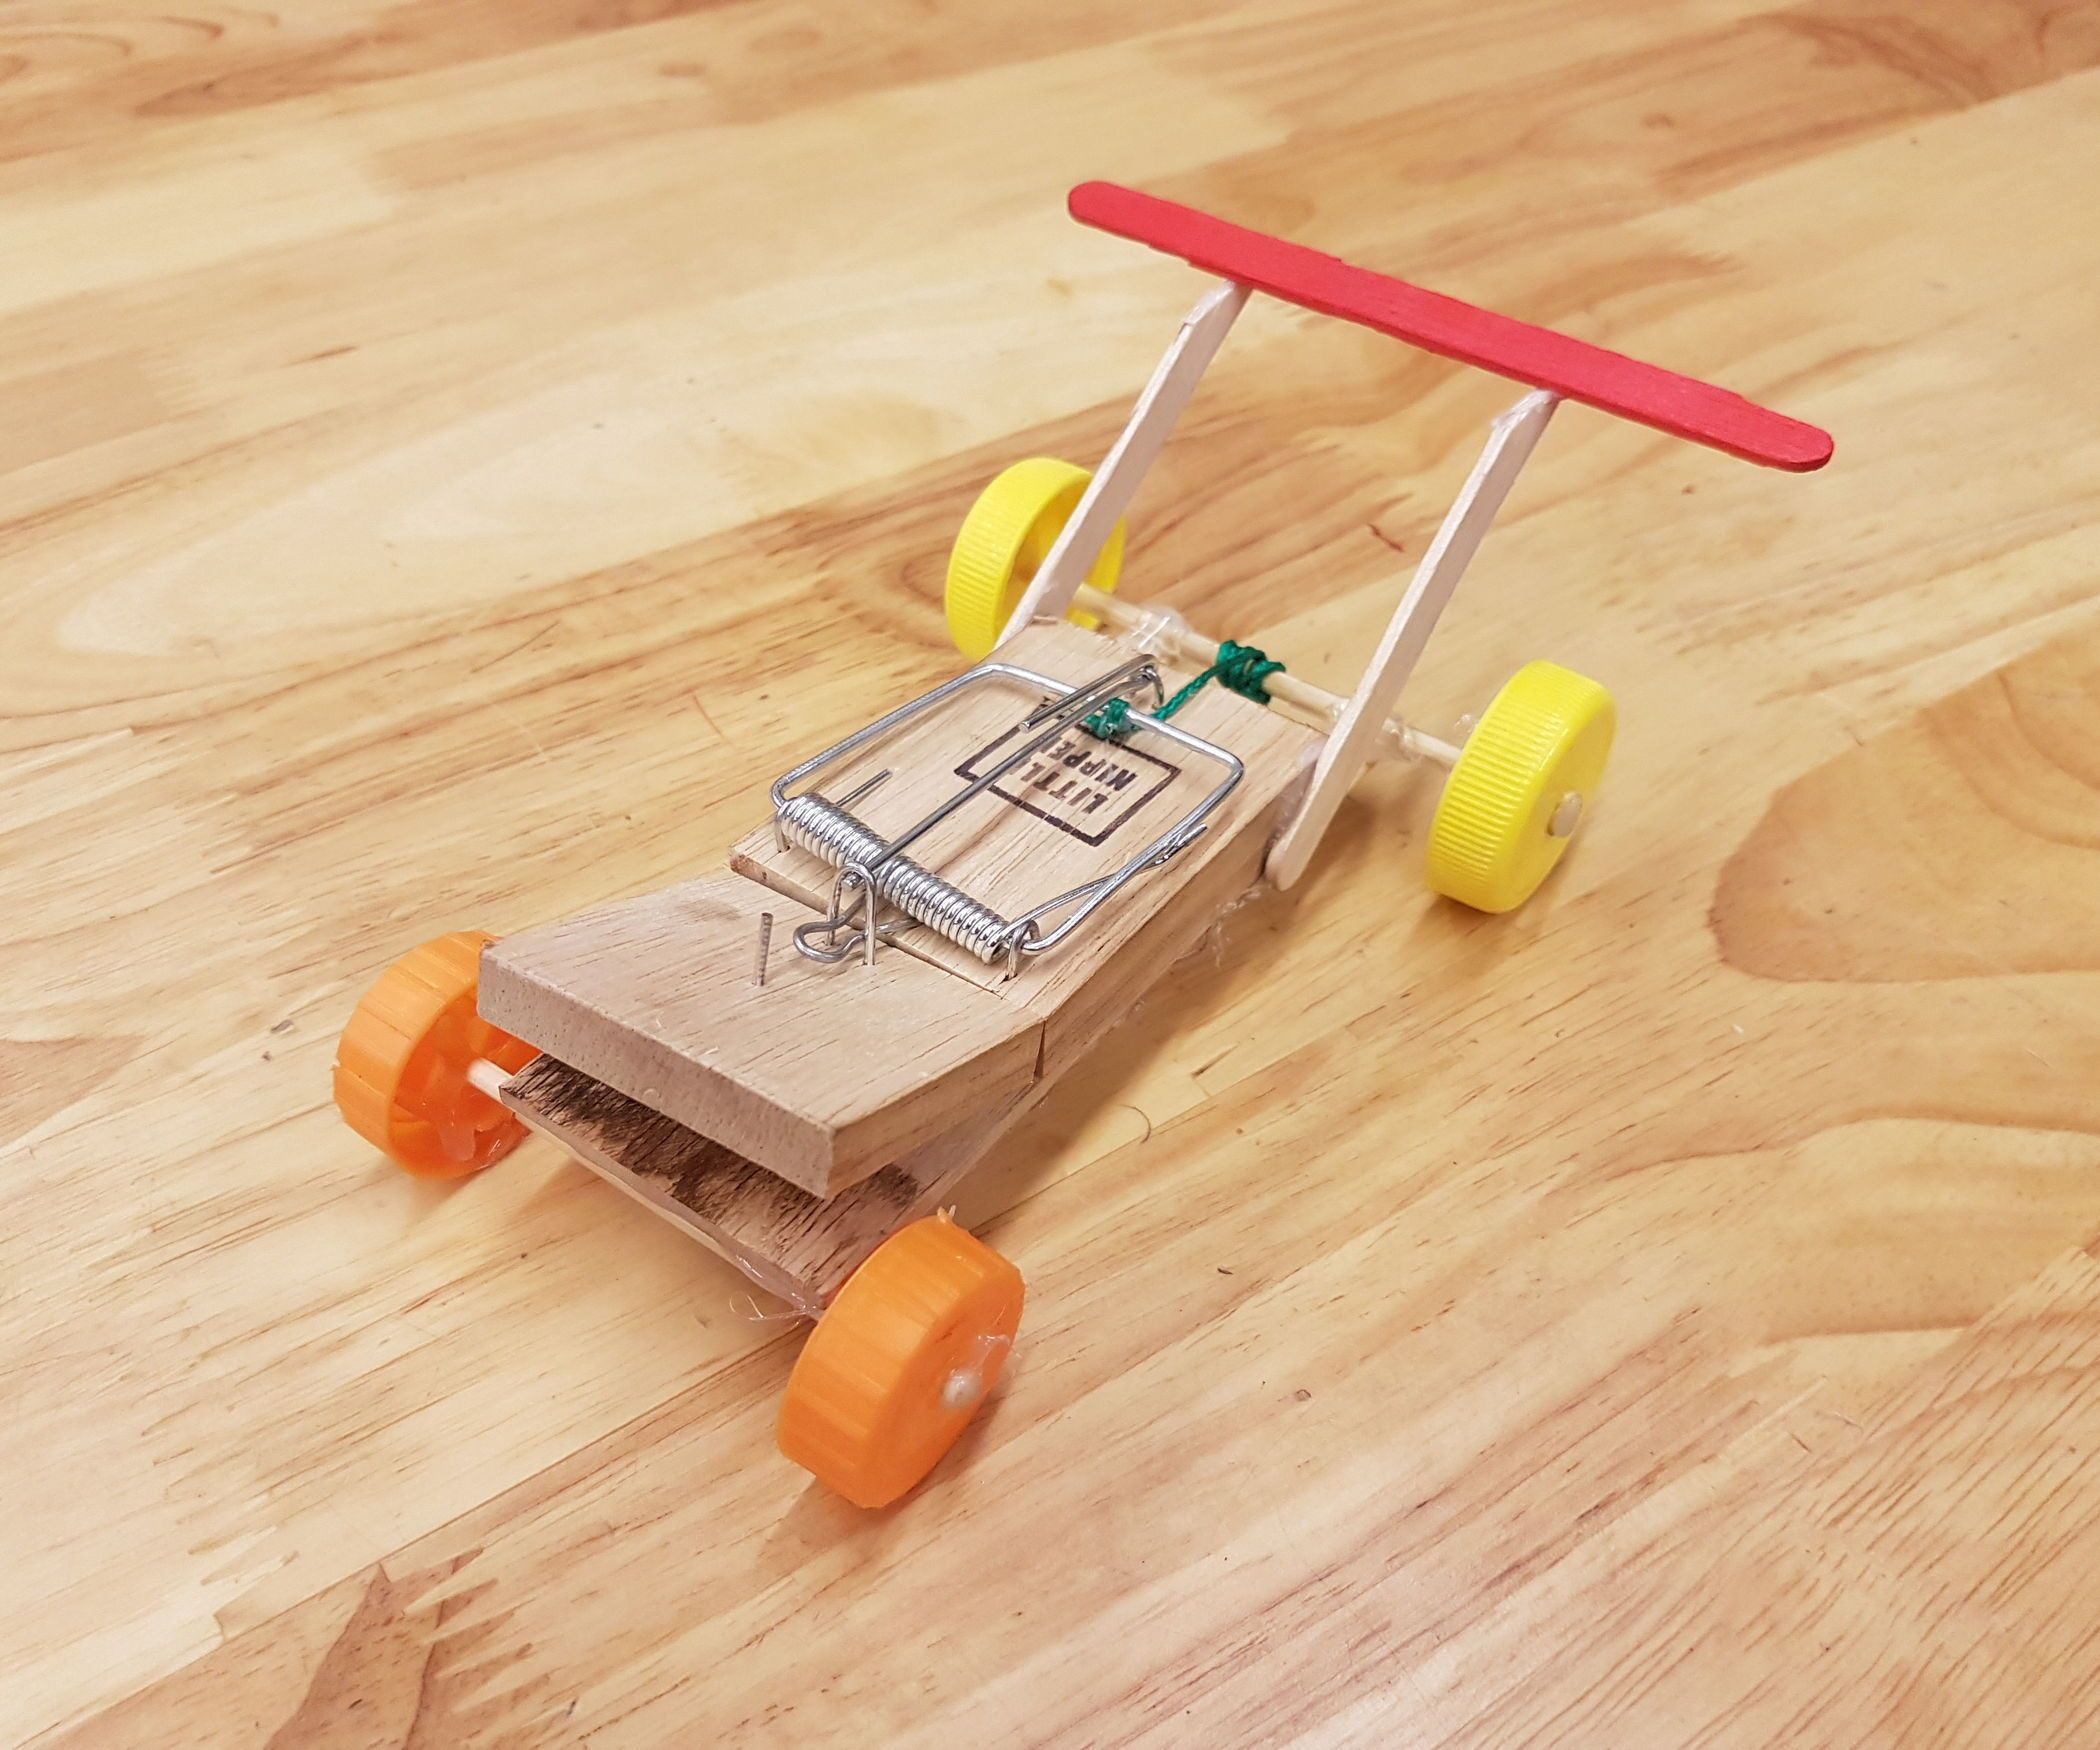 How To Build A Mouse Trap Car My How To Make Cre8ive Kid Ideas